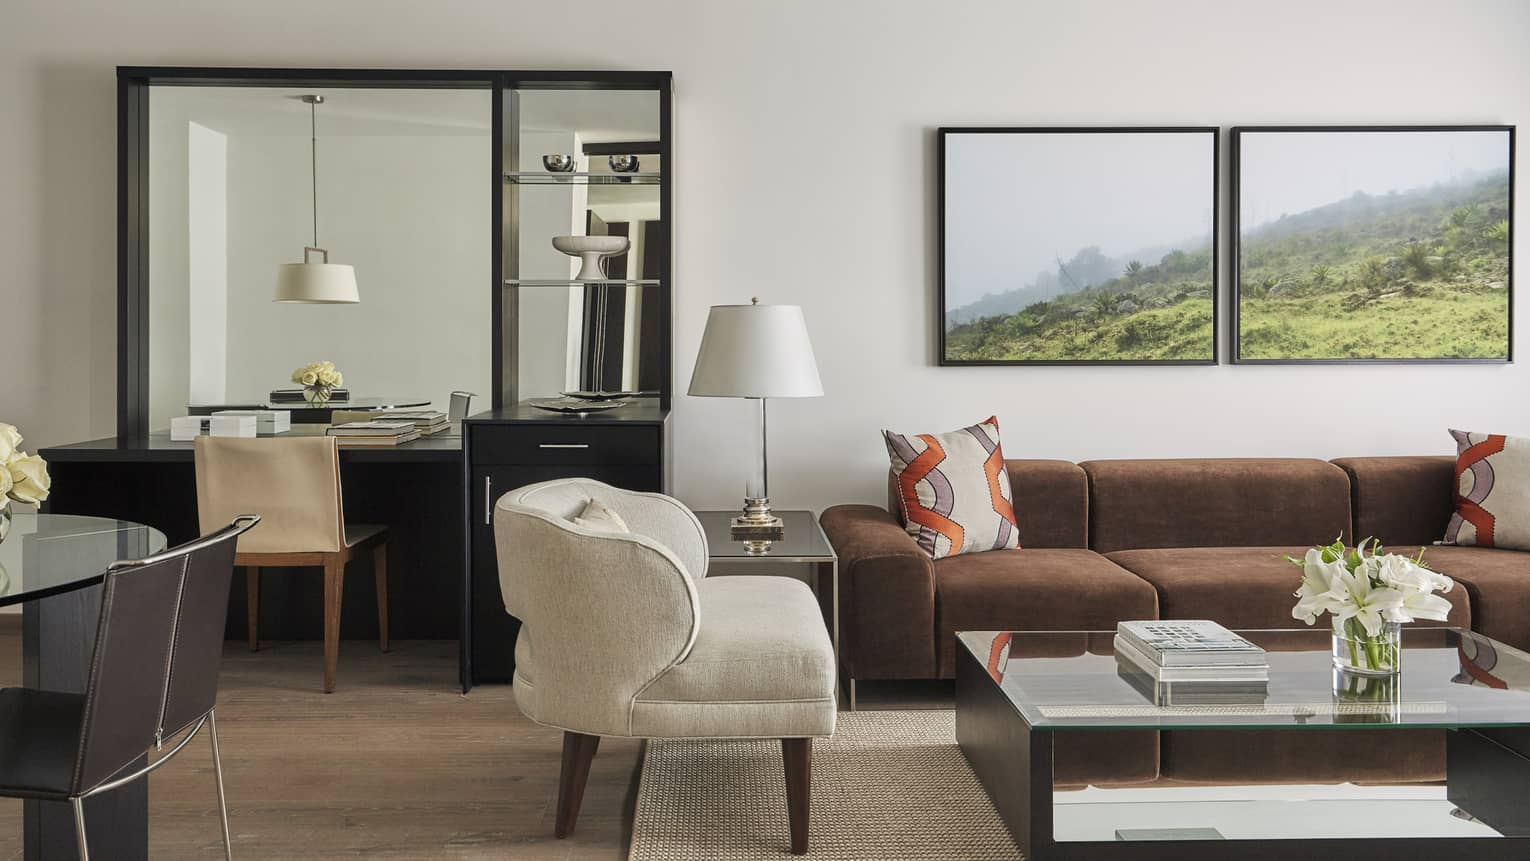 One-Bedroom Premier Suite living room with white armchair, brown sofa, tables and desk